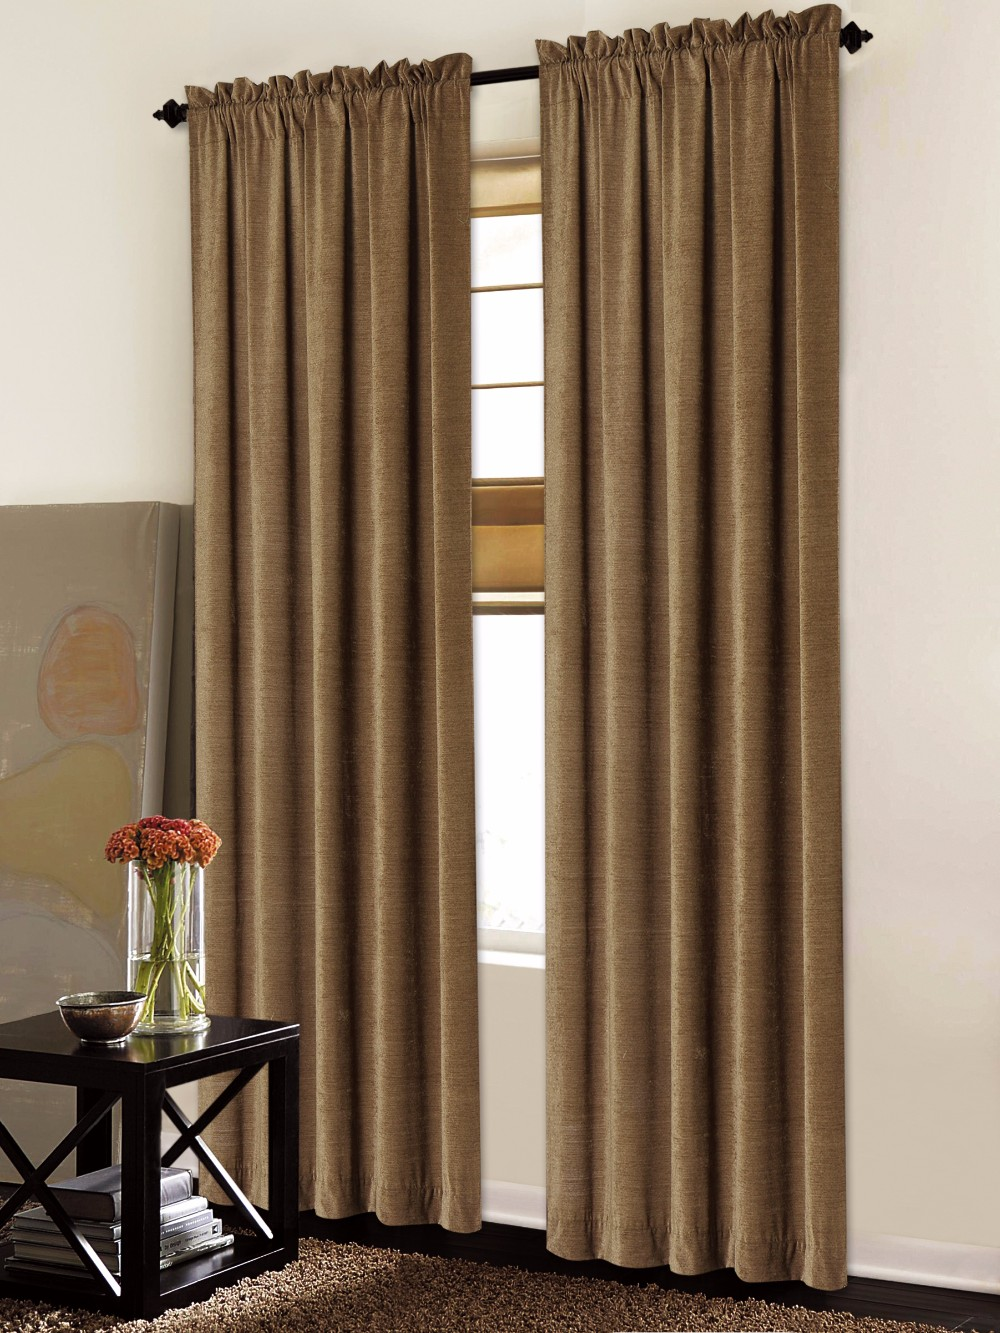 1PC Chenille Hotel Window Curtain